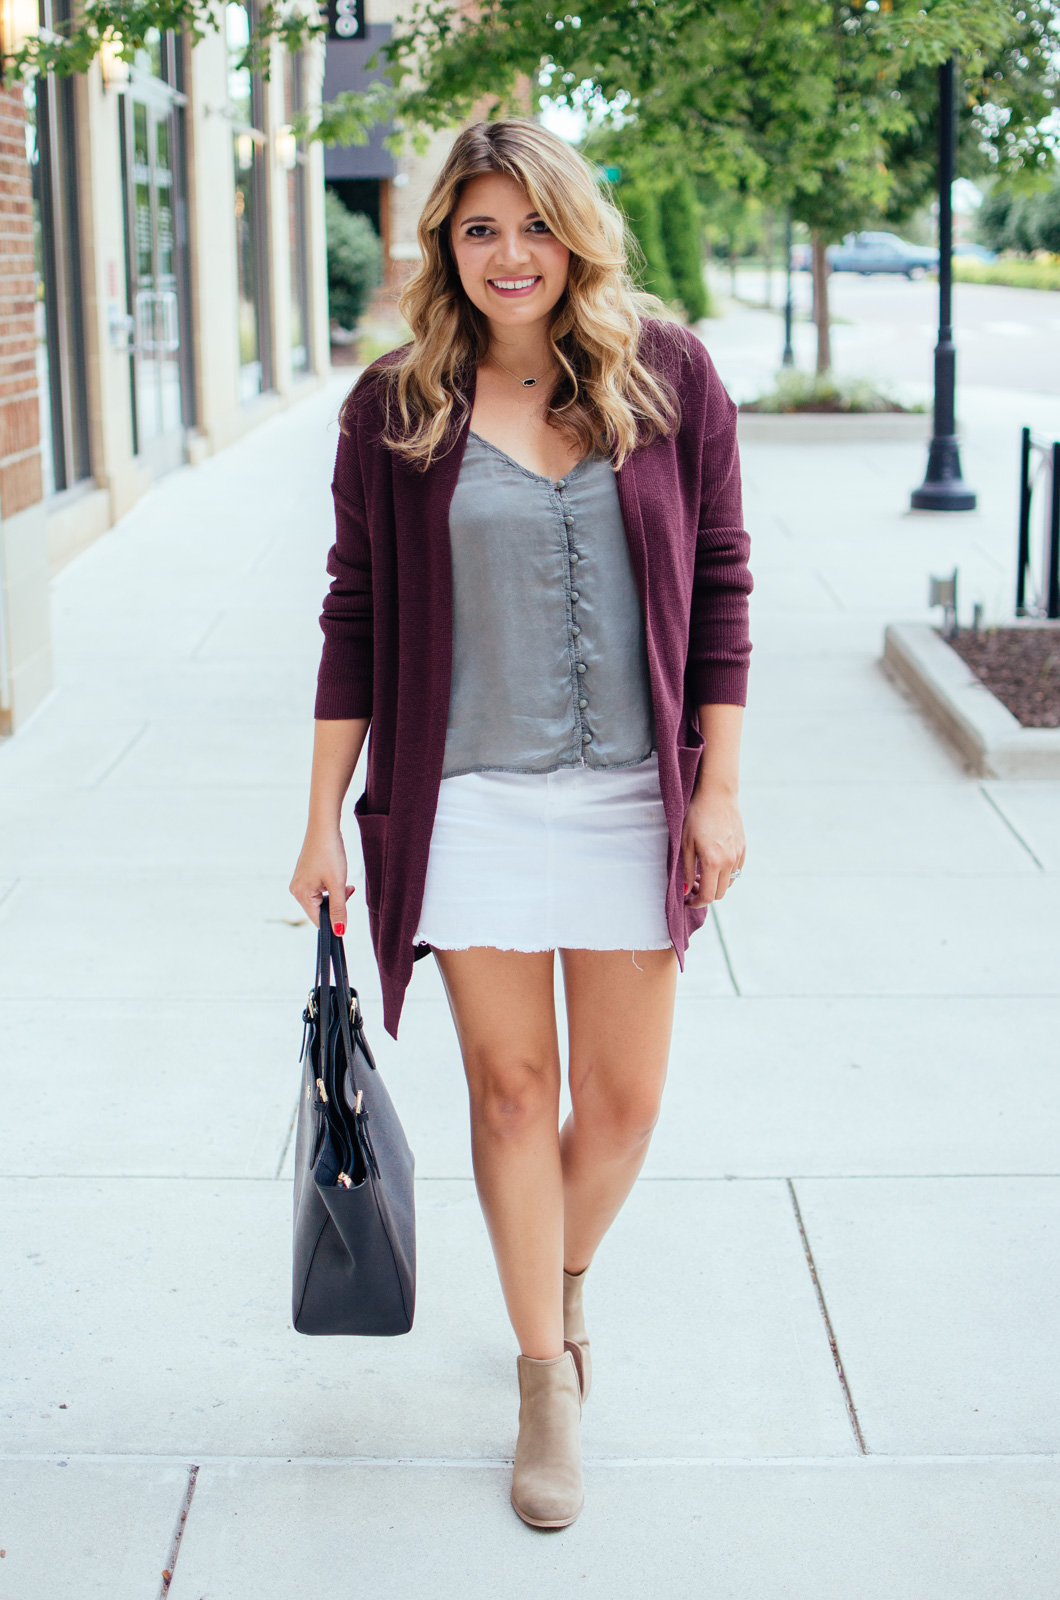 early Fall outfit - long cardigan and a mini skirt | For more warm weather Fall outfits, see bylaurenm.com!